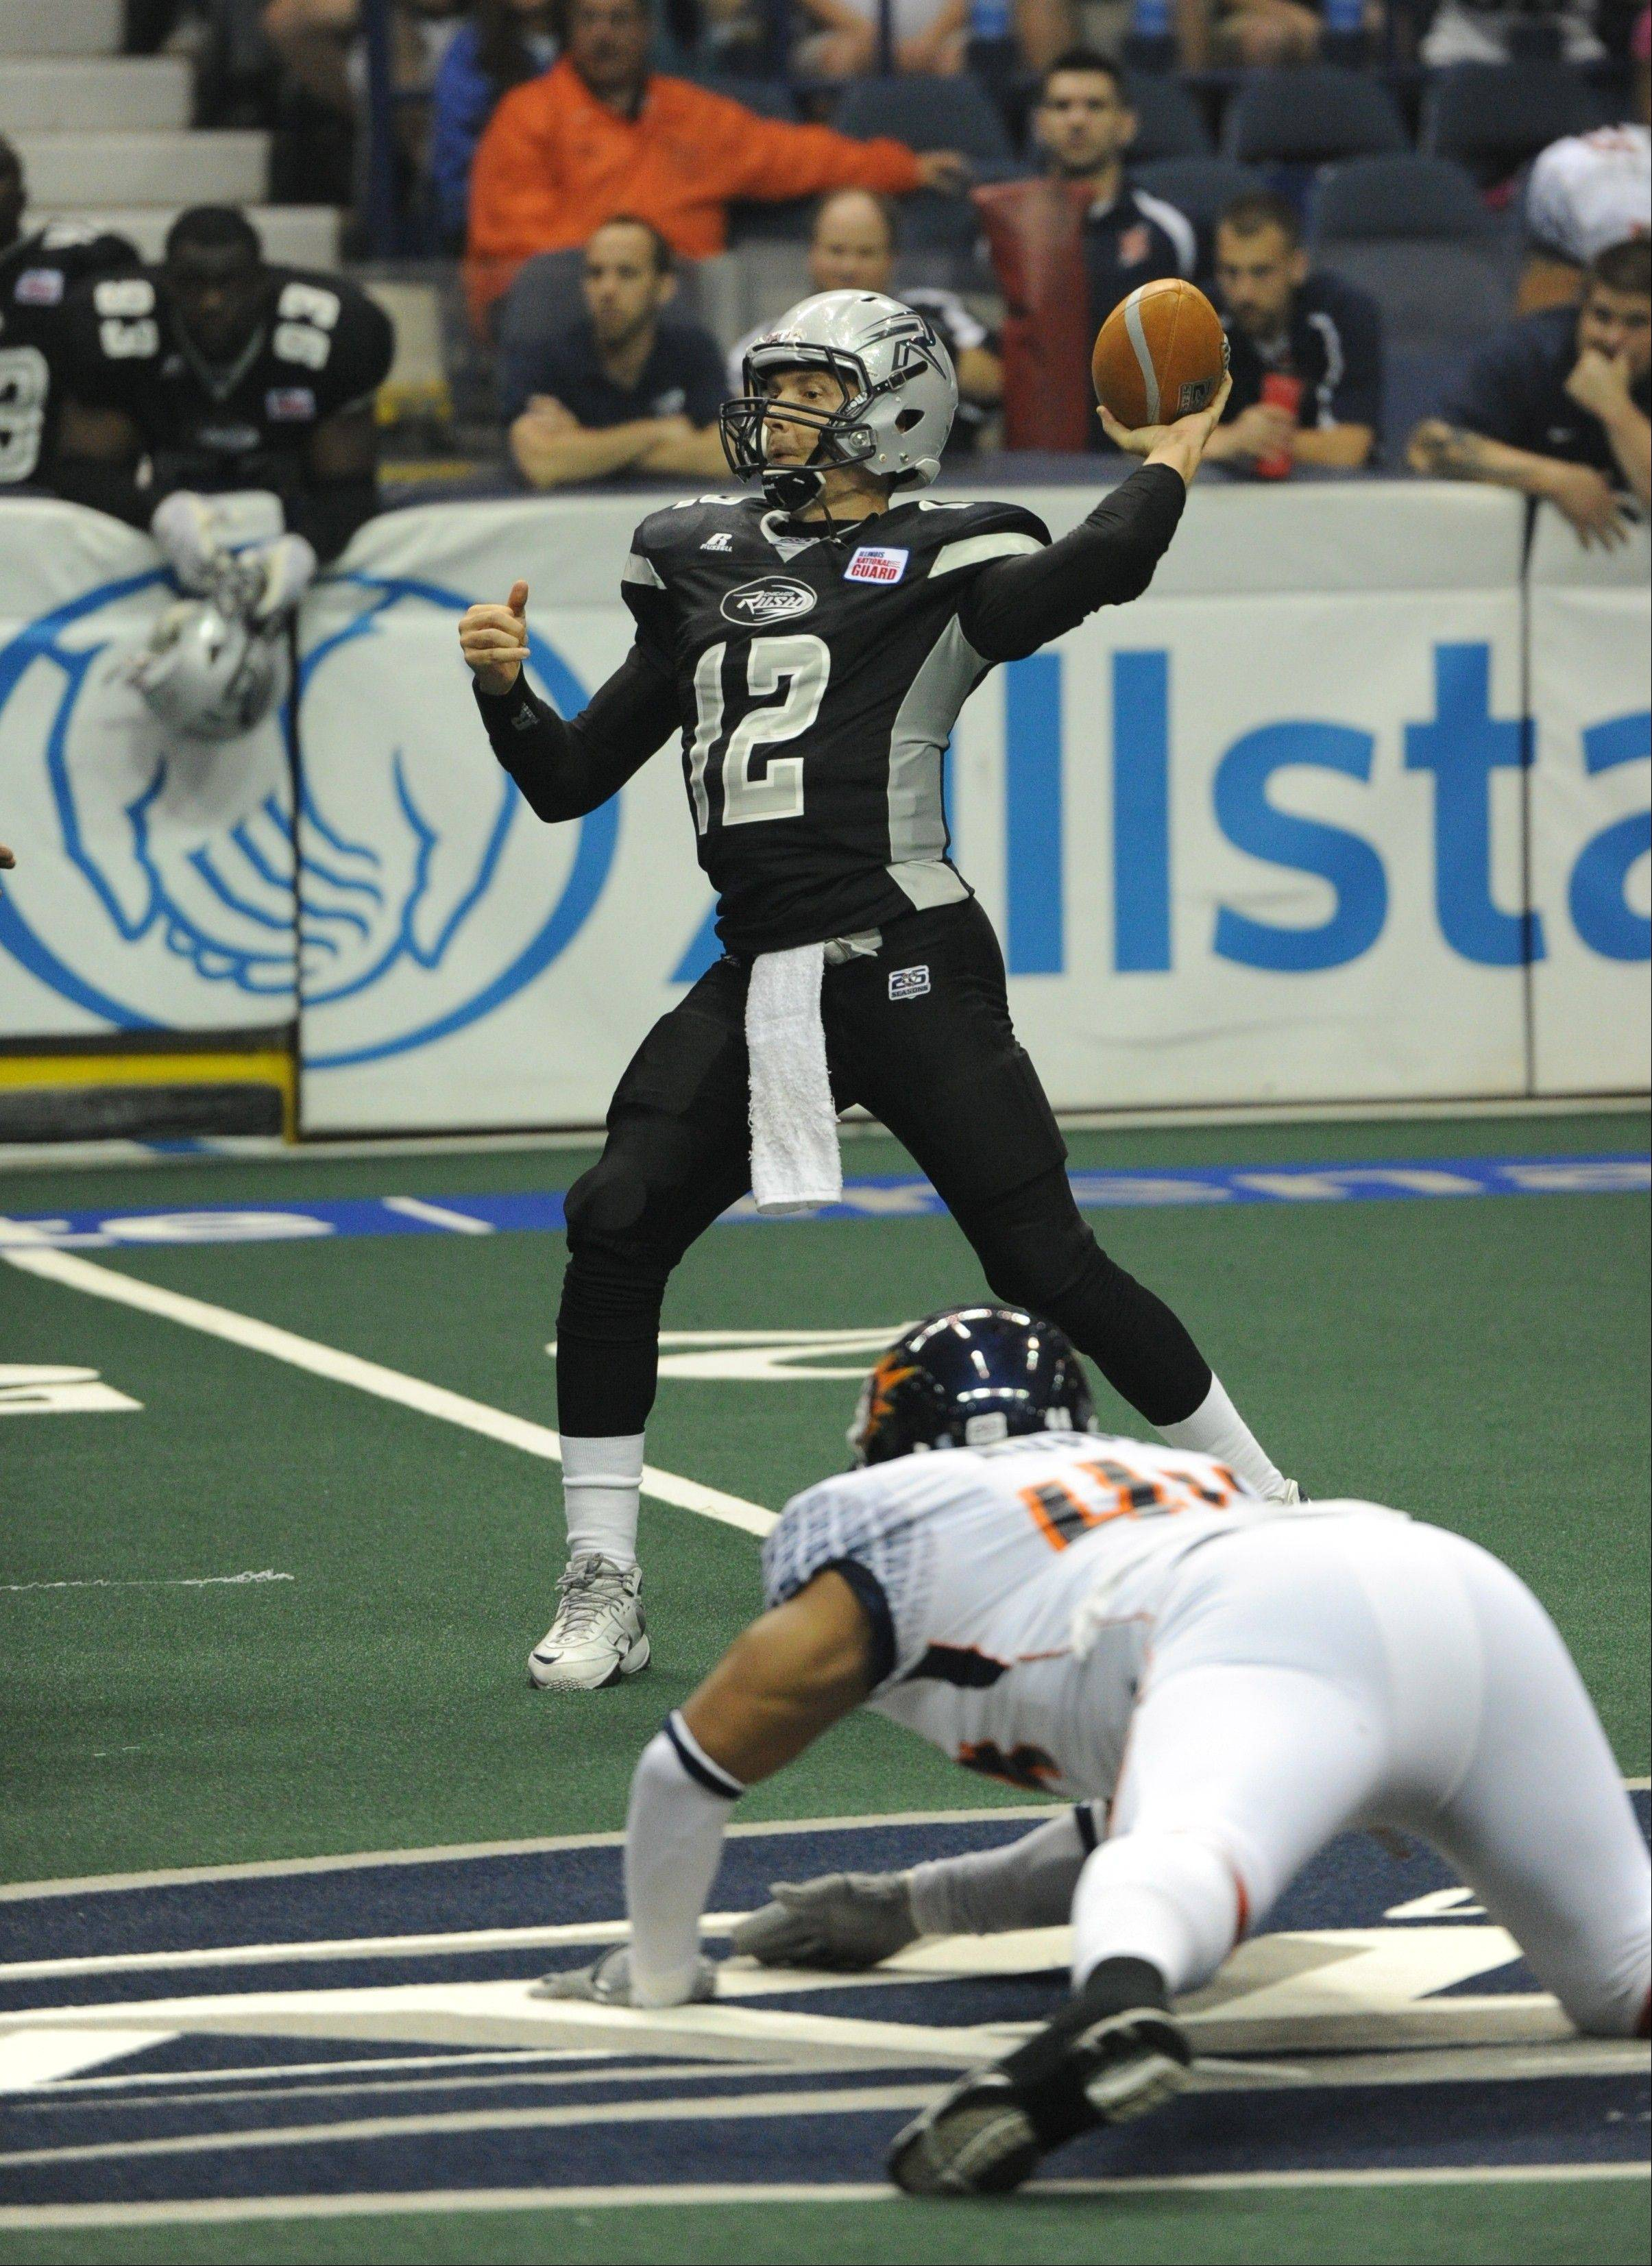 Chicago Rush quarterback Russ Michna is having his best season ever in the AFL, and he leads the league in passing efficiency.